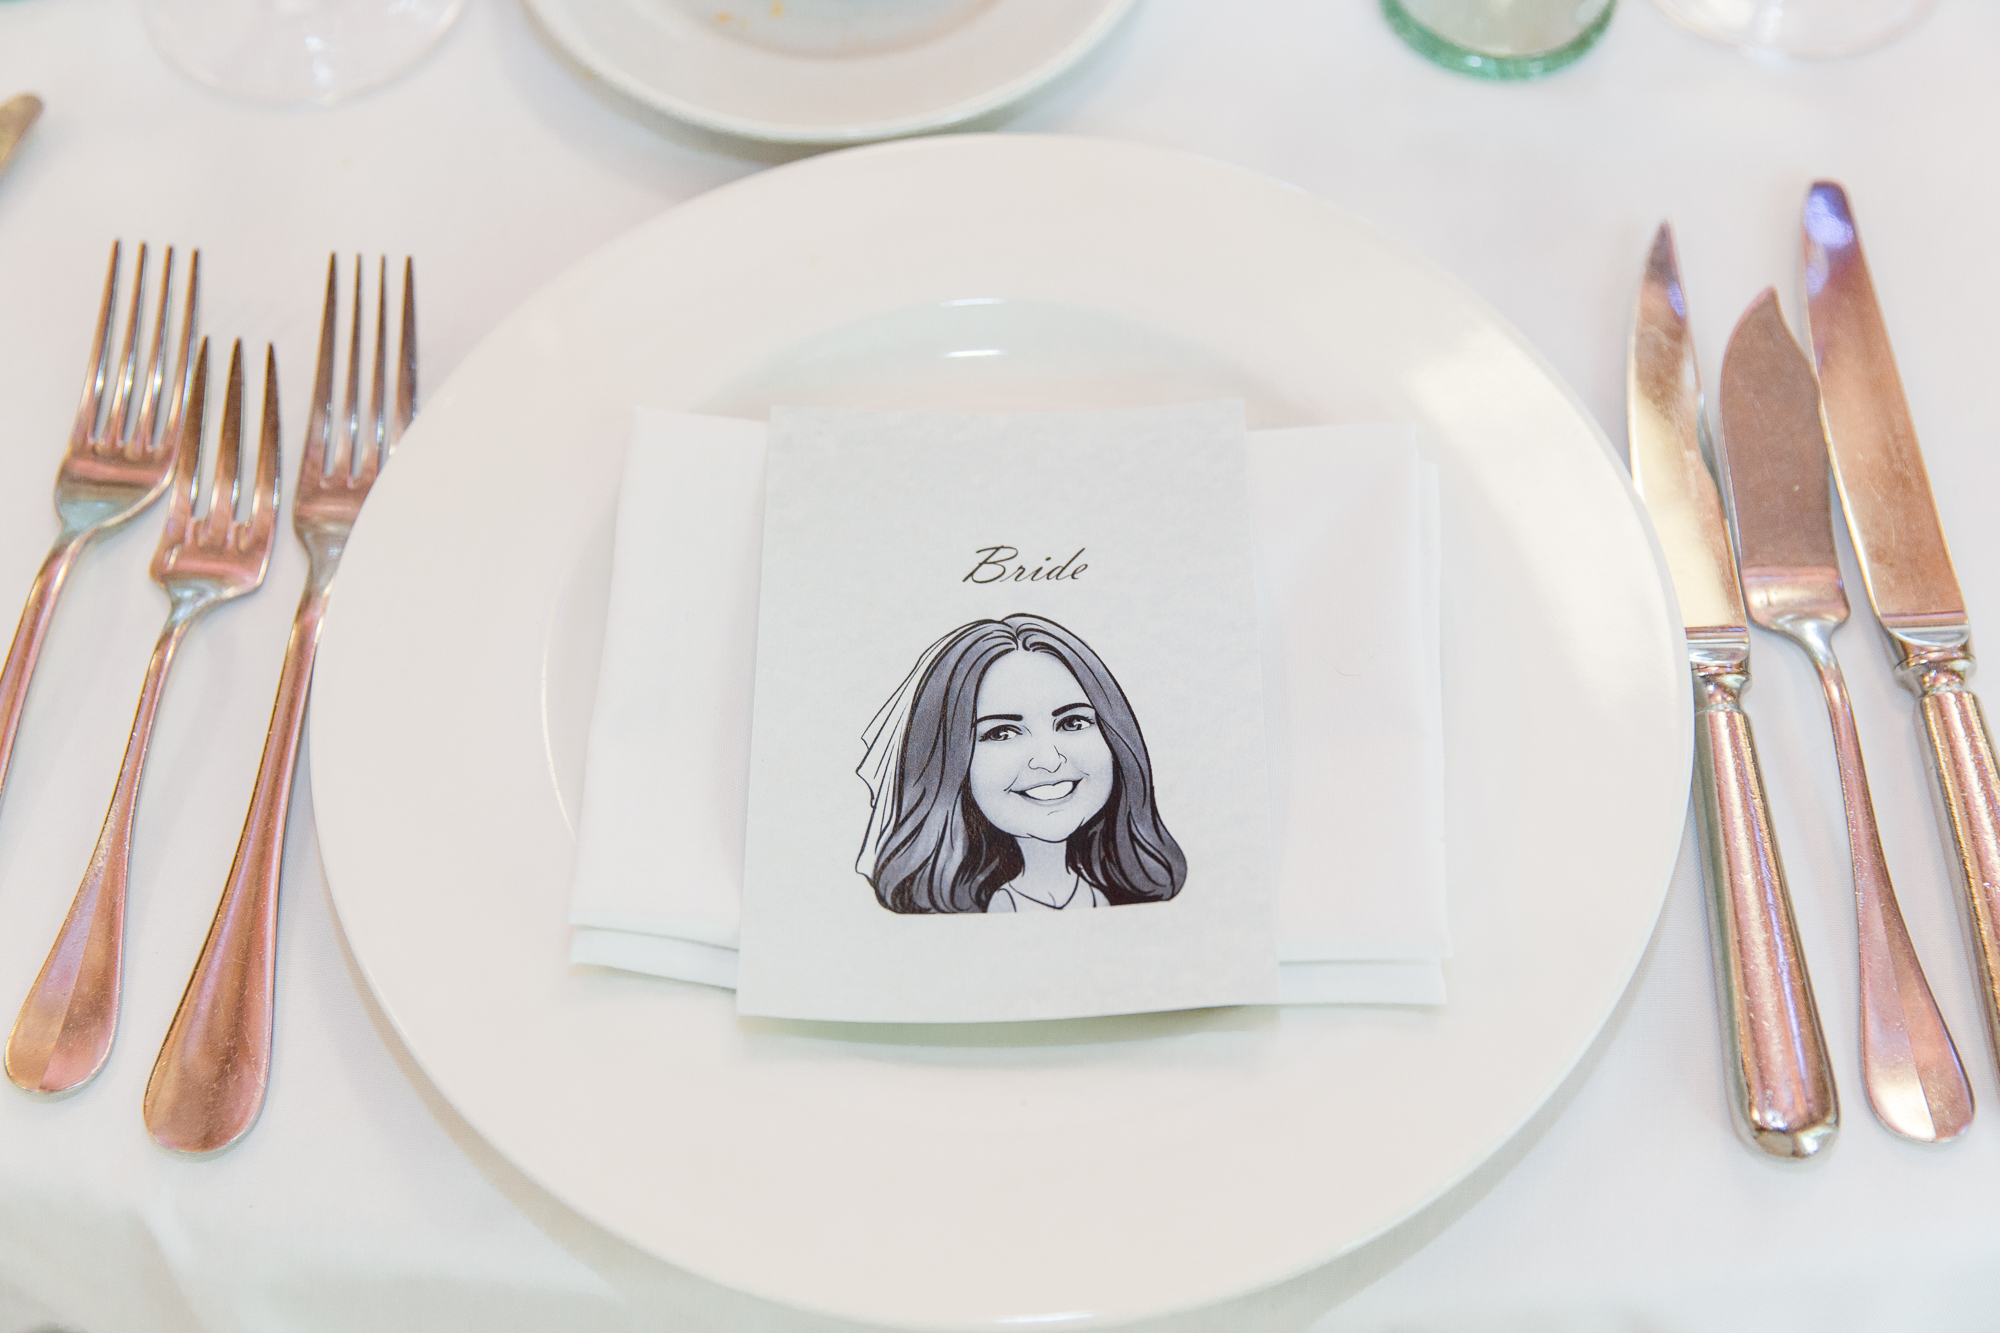 Caricature drawing on wedding table at Destination Spanish wedding